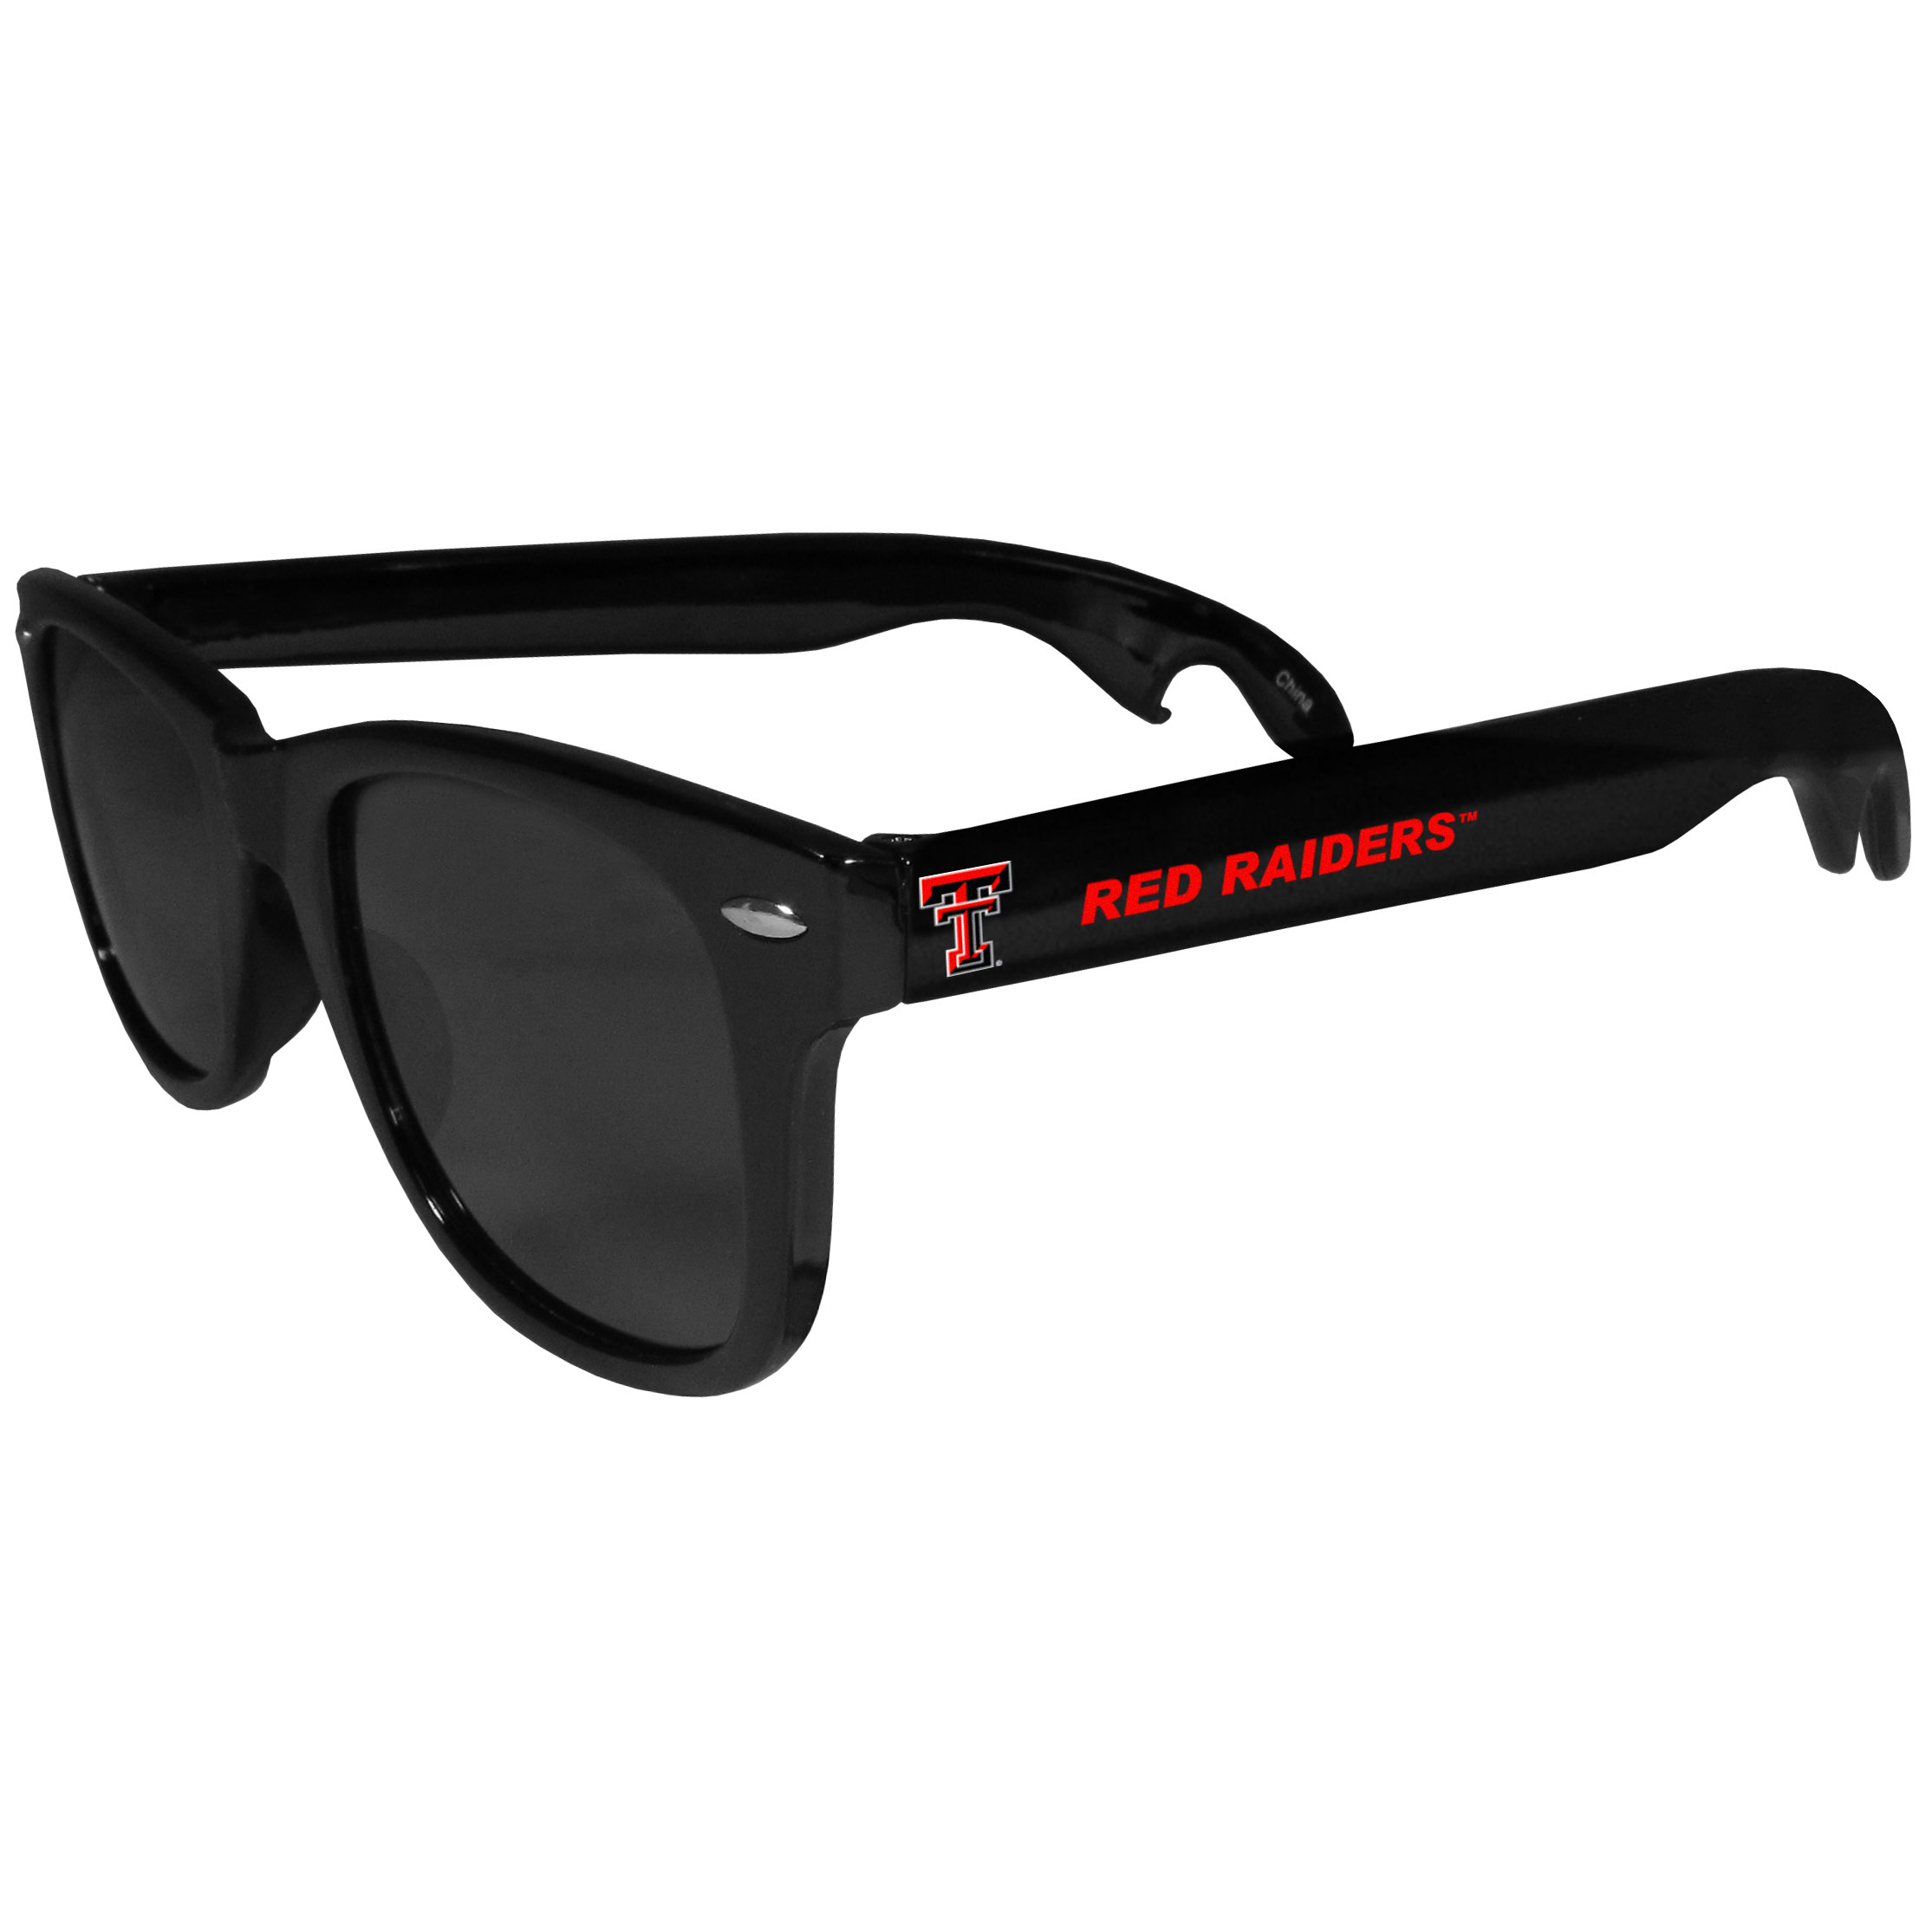 Texas Tech Raiders Beachfarer Bottle Opener Sunglasses - Seriously, these sunglasses open bottles! Keep the party going with these amazing Texas Tech Raiders bottle opener sunglasses. The stylish retro frames feature team designs on the arms and functional bottle openers on the end of the arms. Whether you are at the beach or having a backyard BBQ on game day, these shades will keep your eyes protected with 100% UVA/UVB protection and keep you hydrated with the handy bottle opener arms.